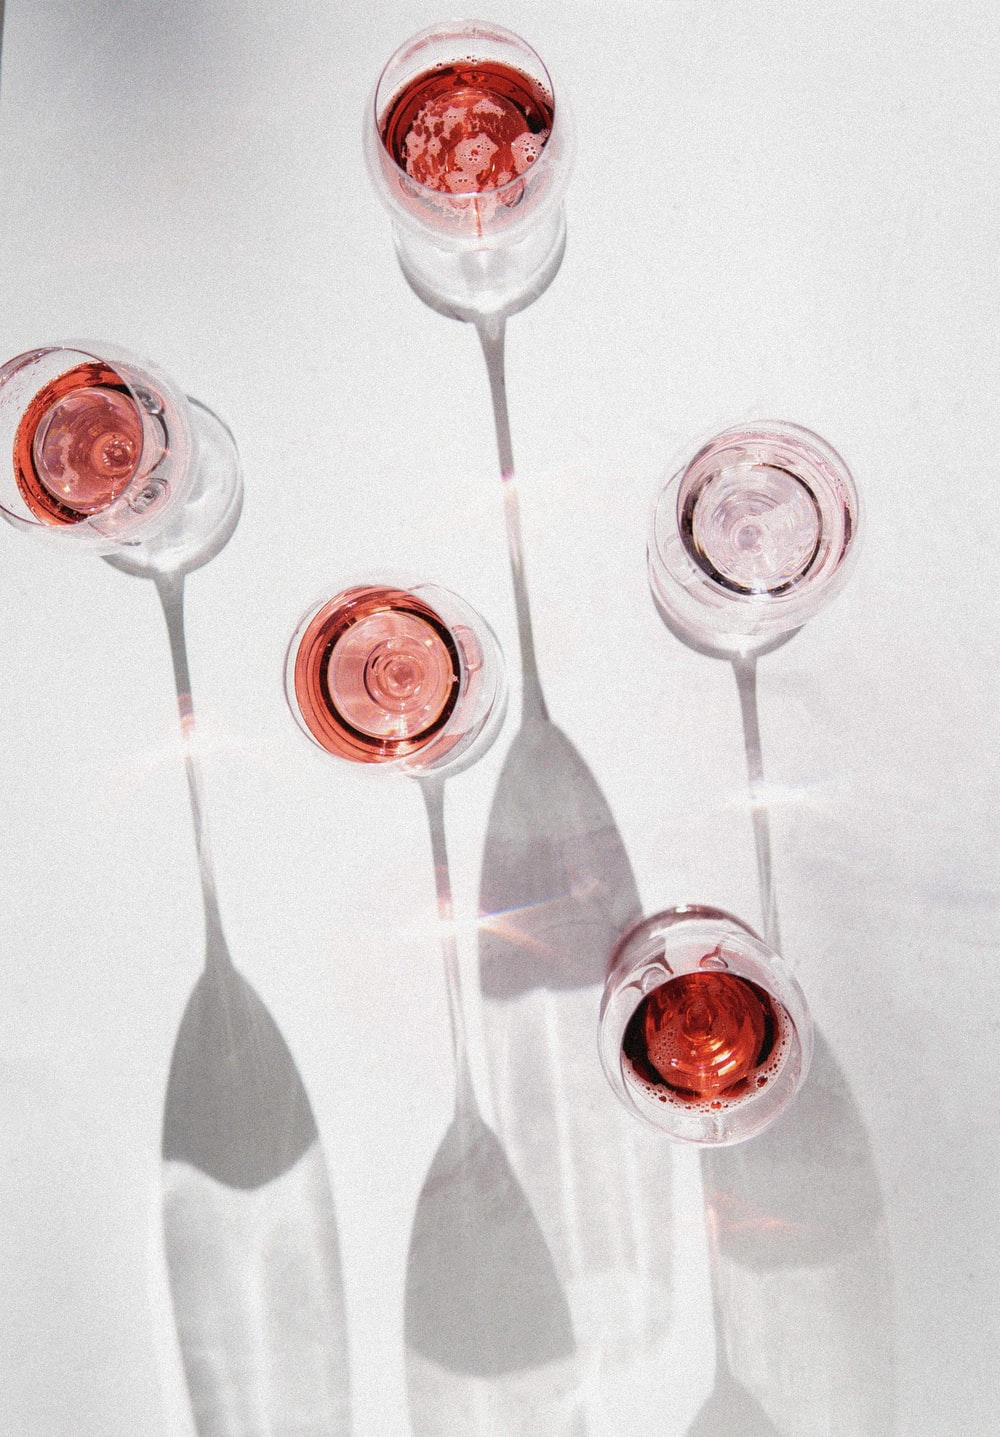 clear wine glasses with red liquid